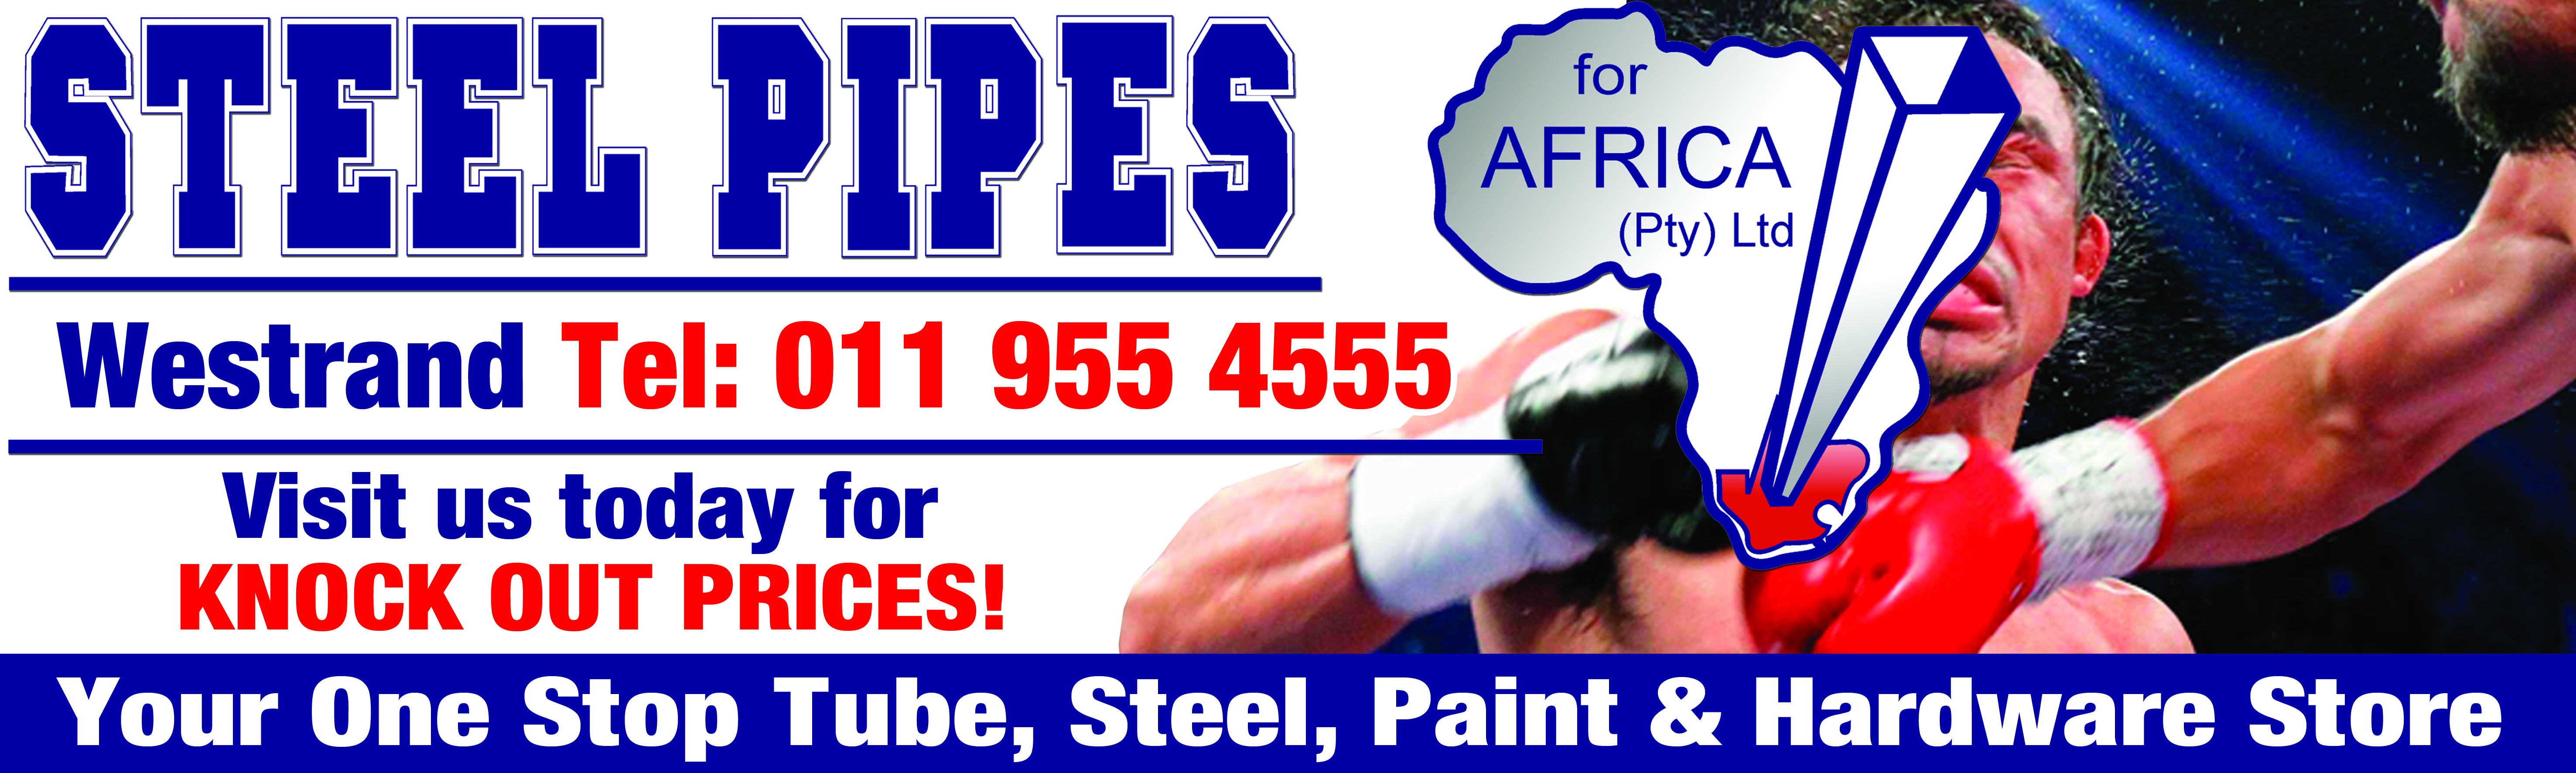 Steel Pipes Banner 2